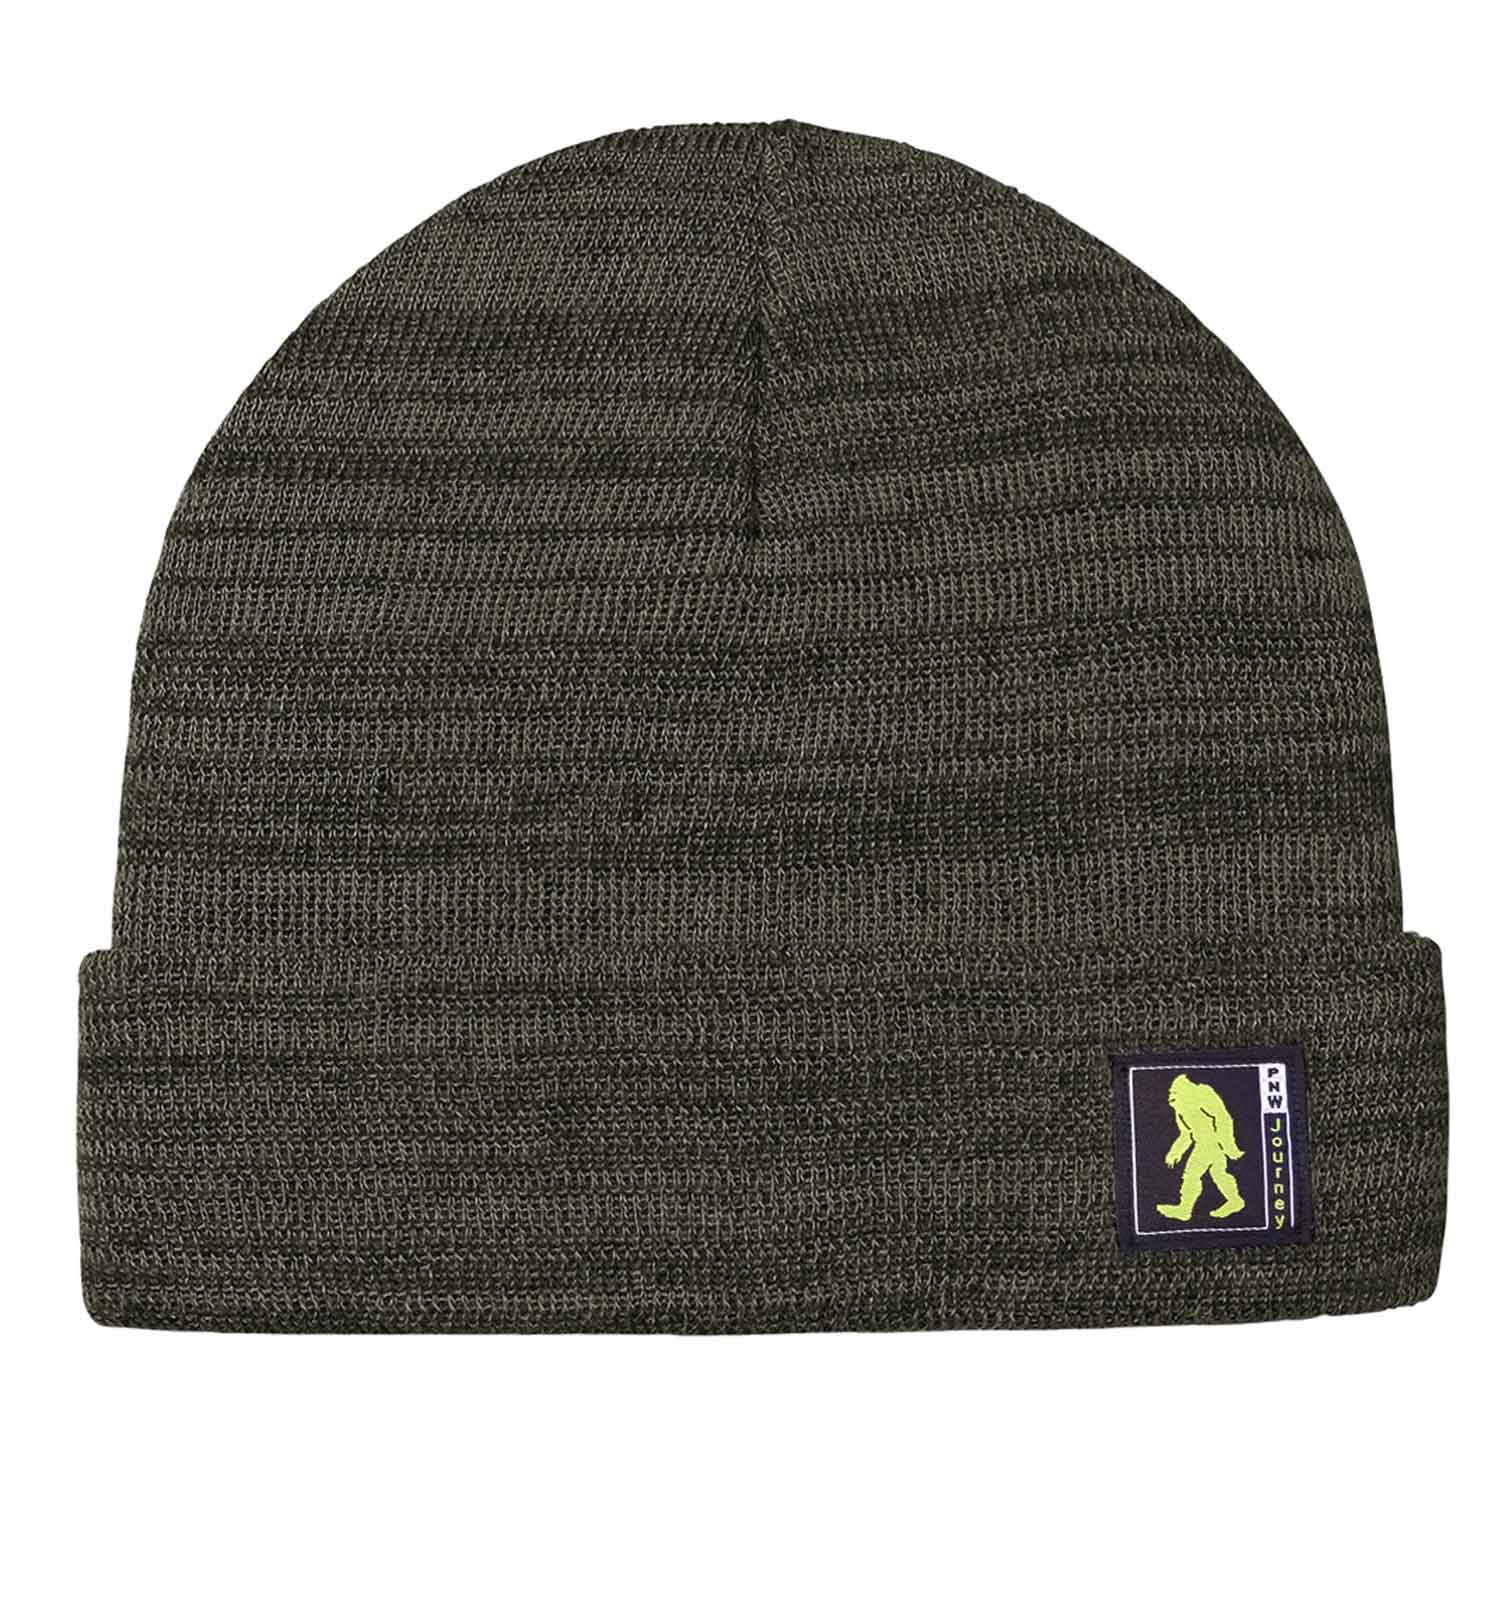 PNW Beanie - Bigfoot Classic Comfort - Heather Olive